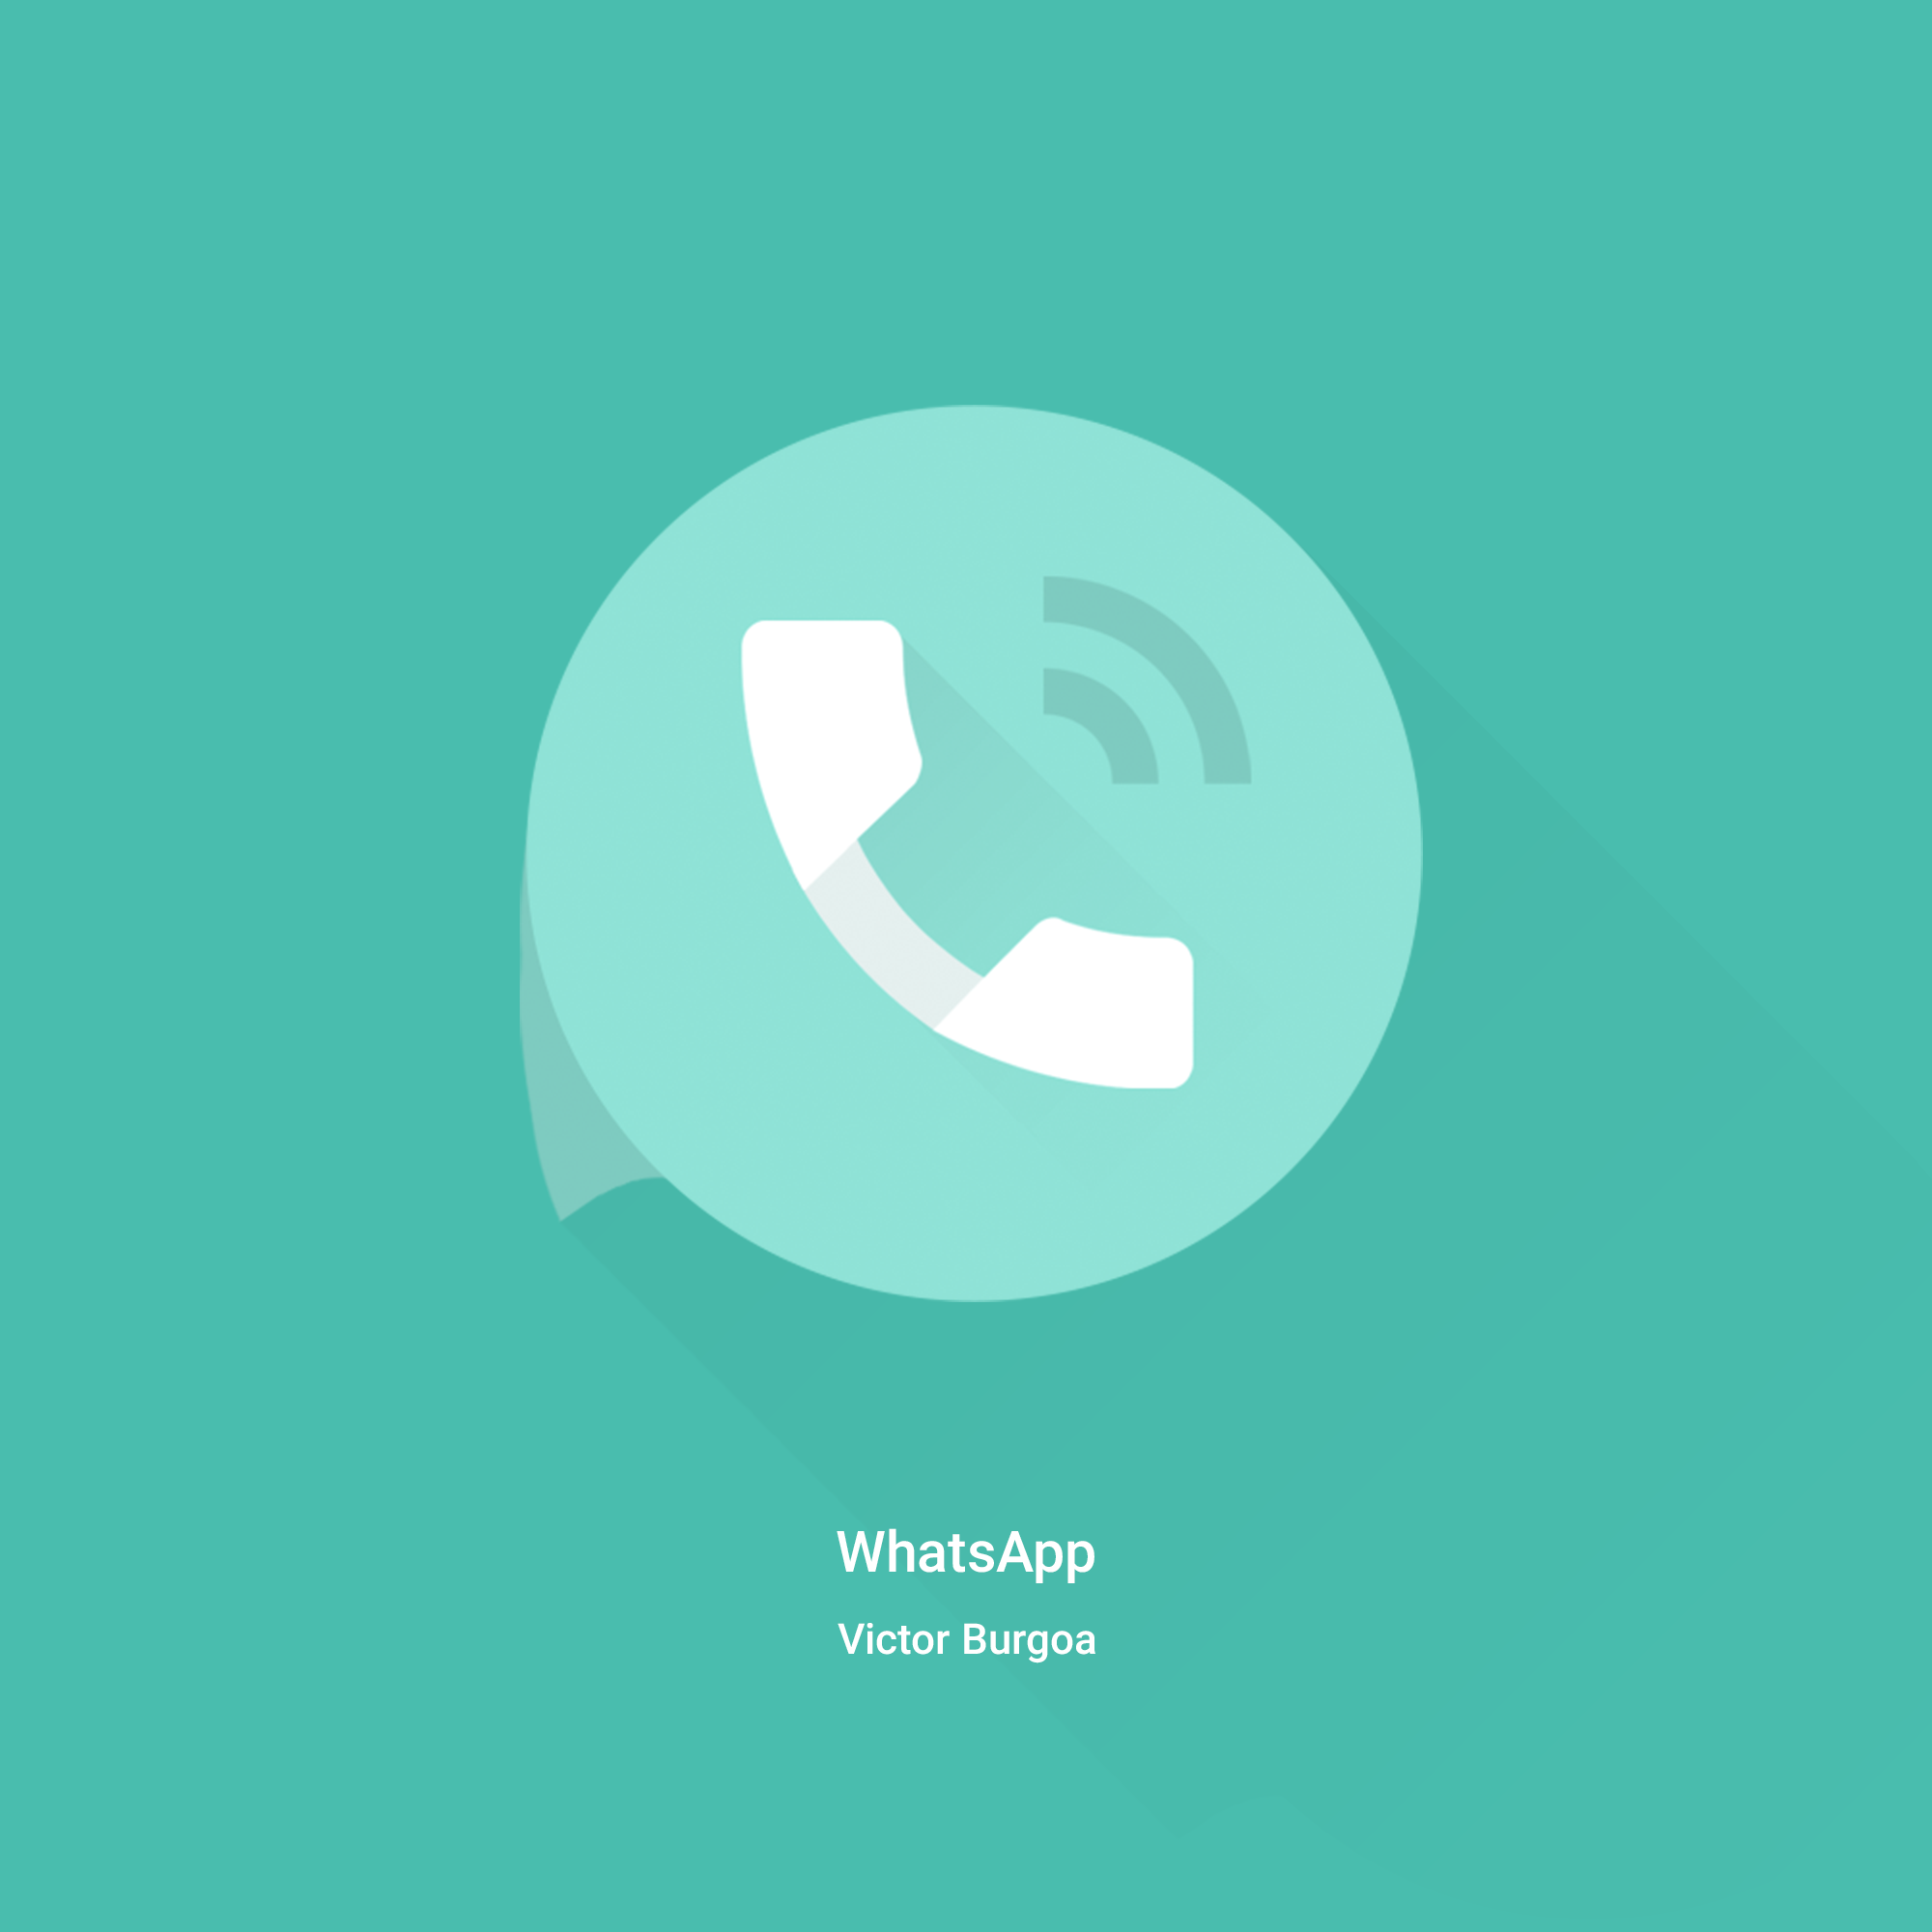 WhatsApp redesign - Uplabs